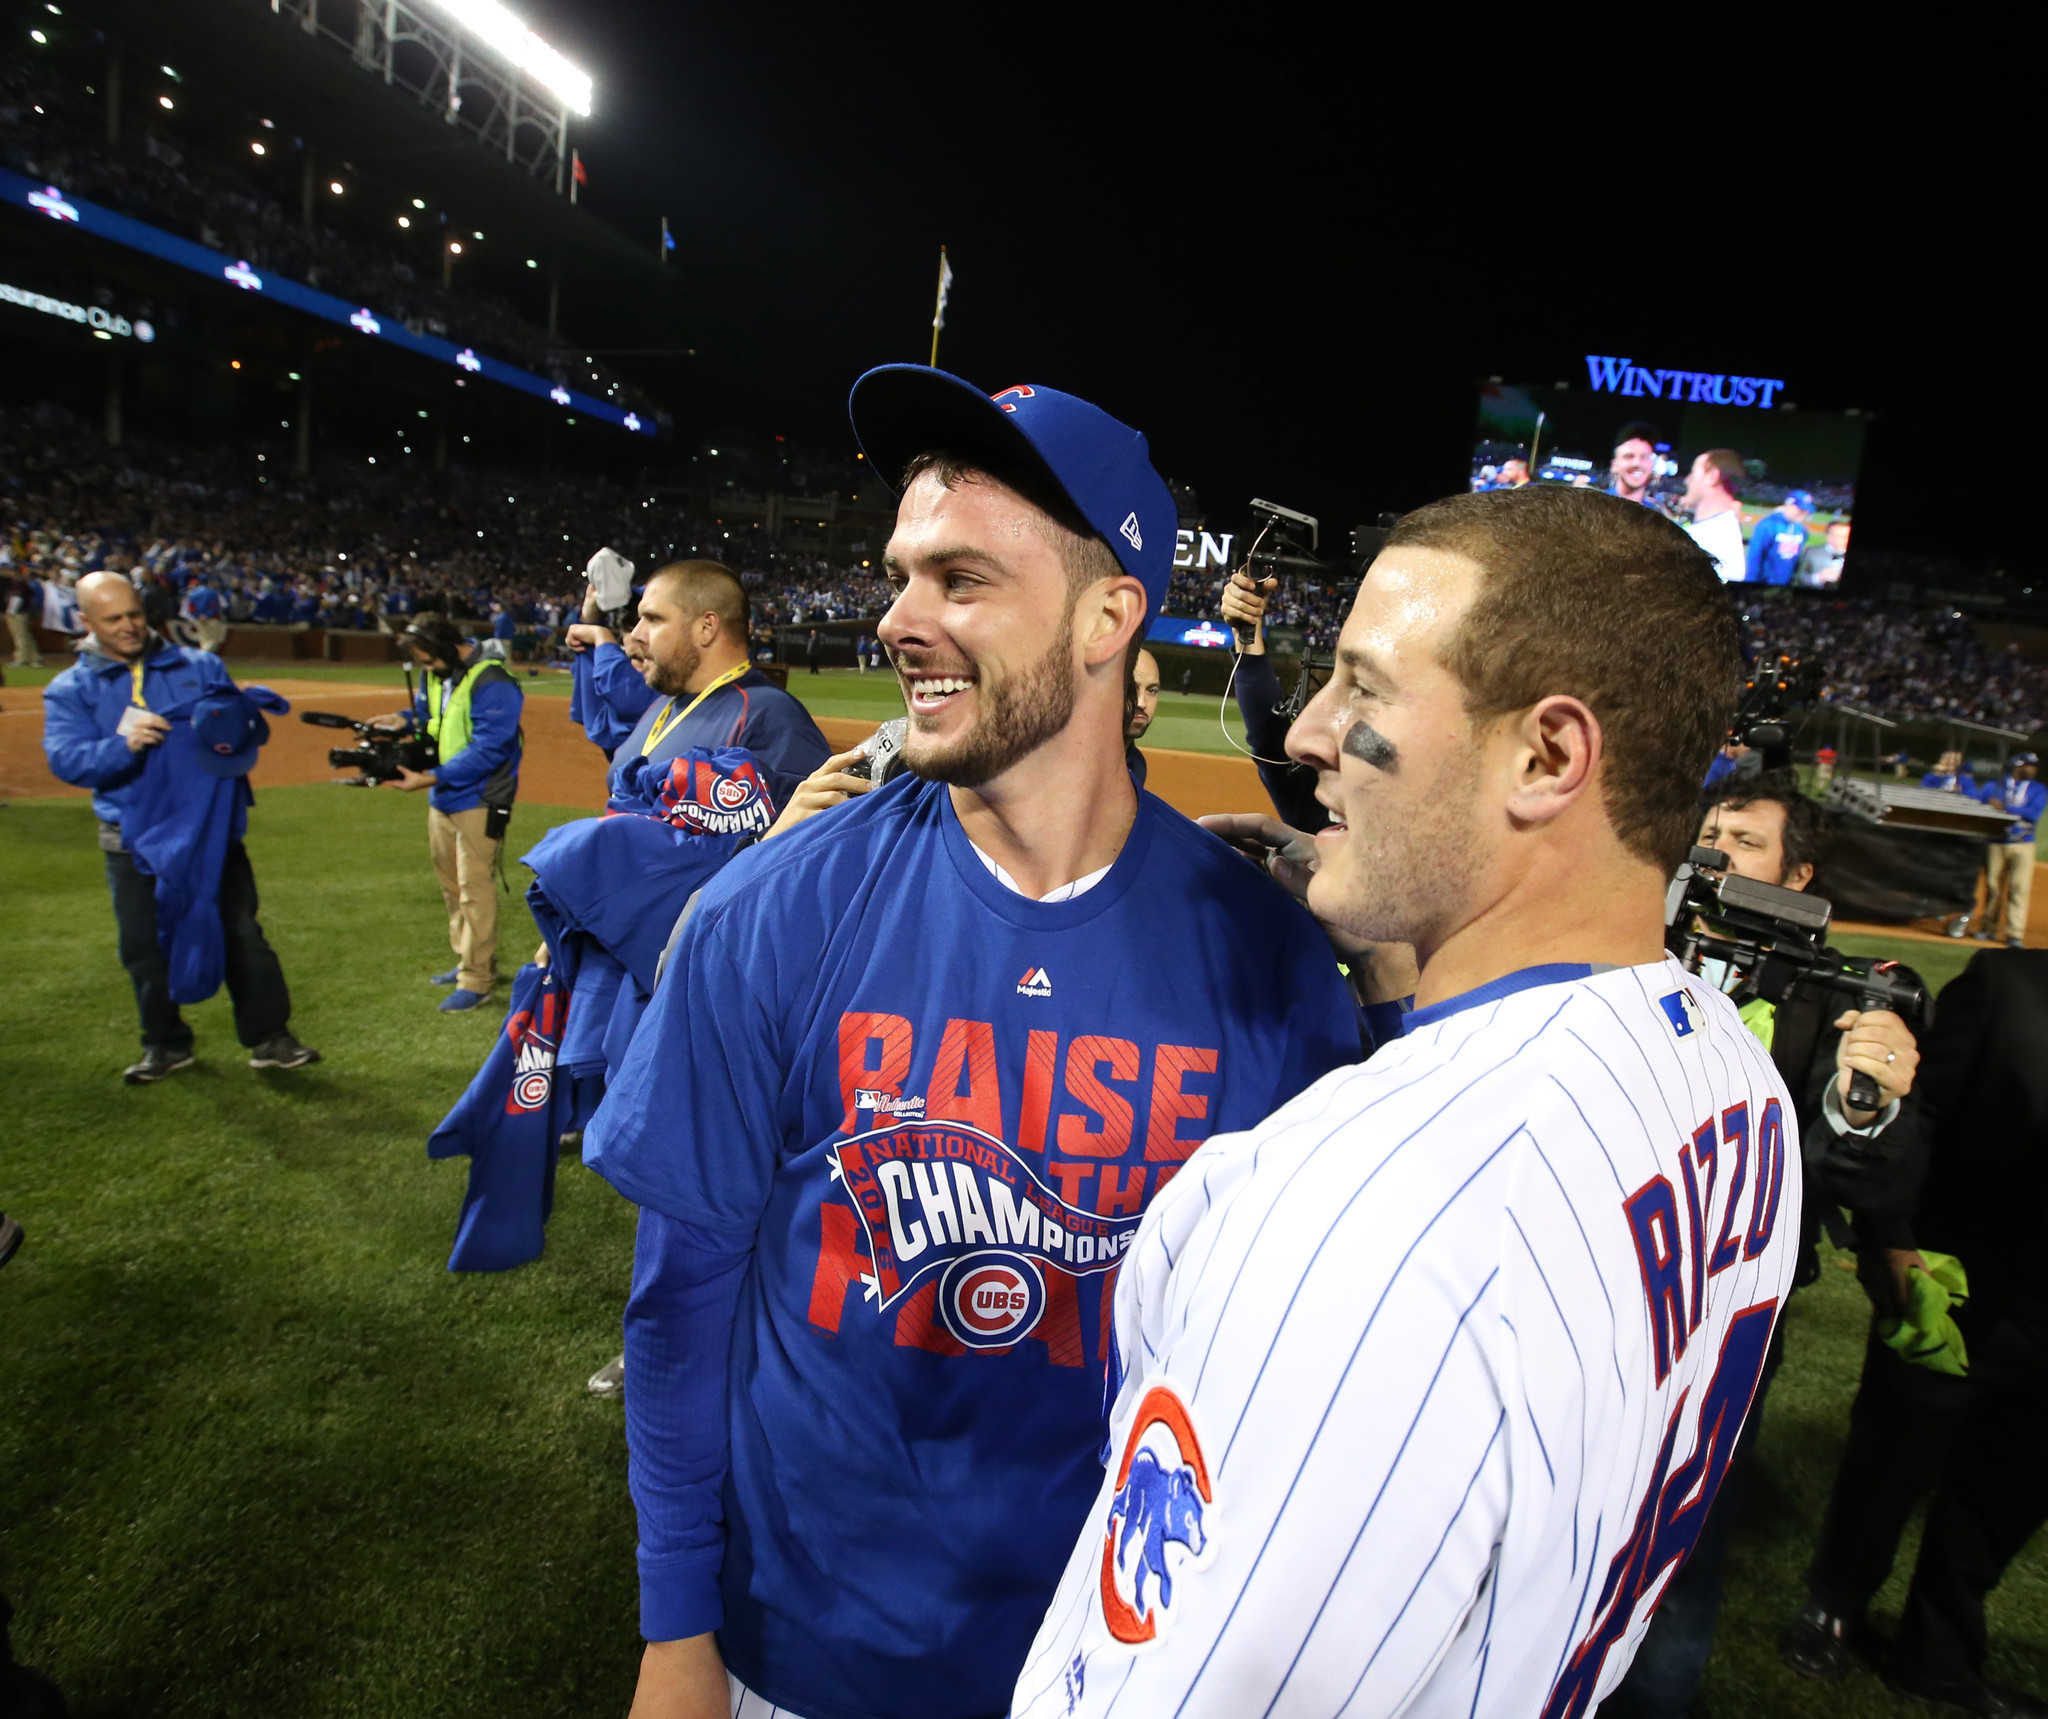 Ct-world-series-preview-cubs-indians-spt-1025-20161024